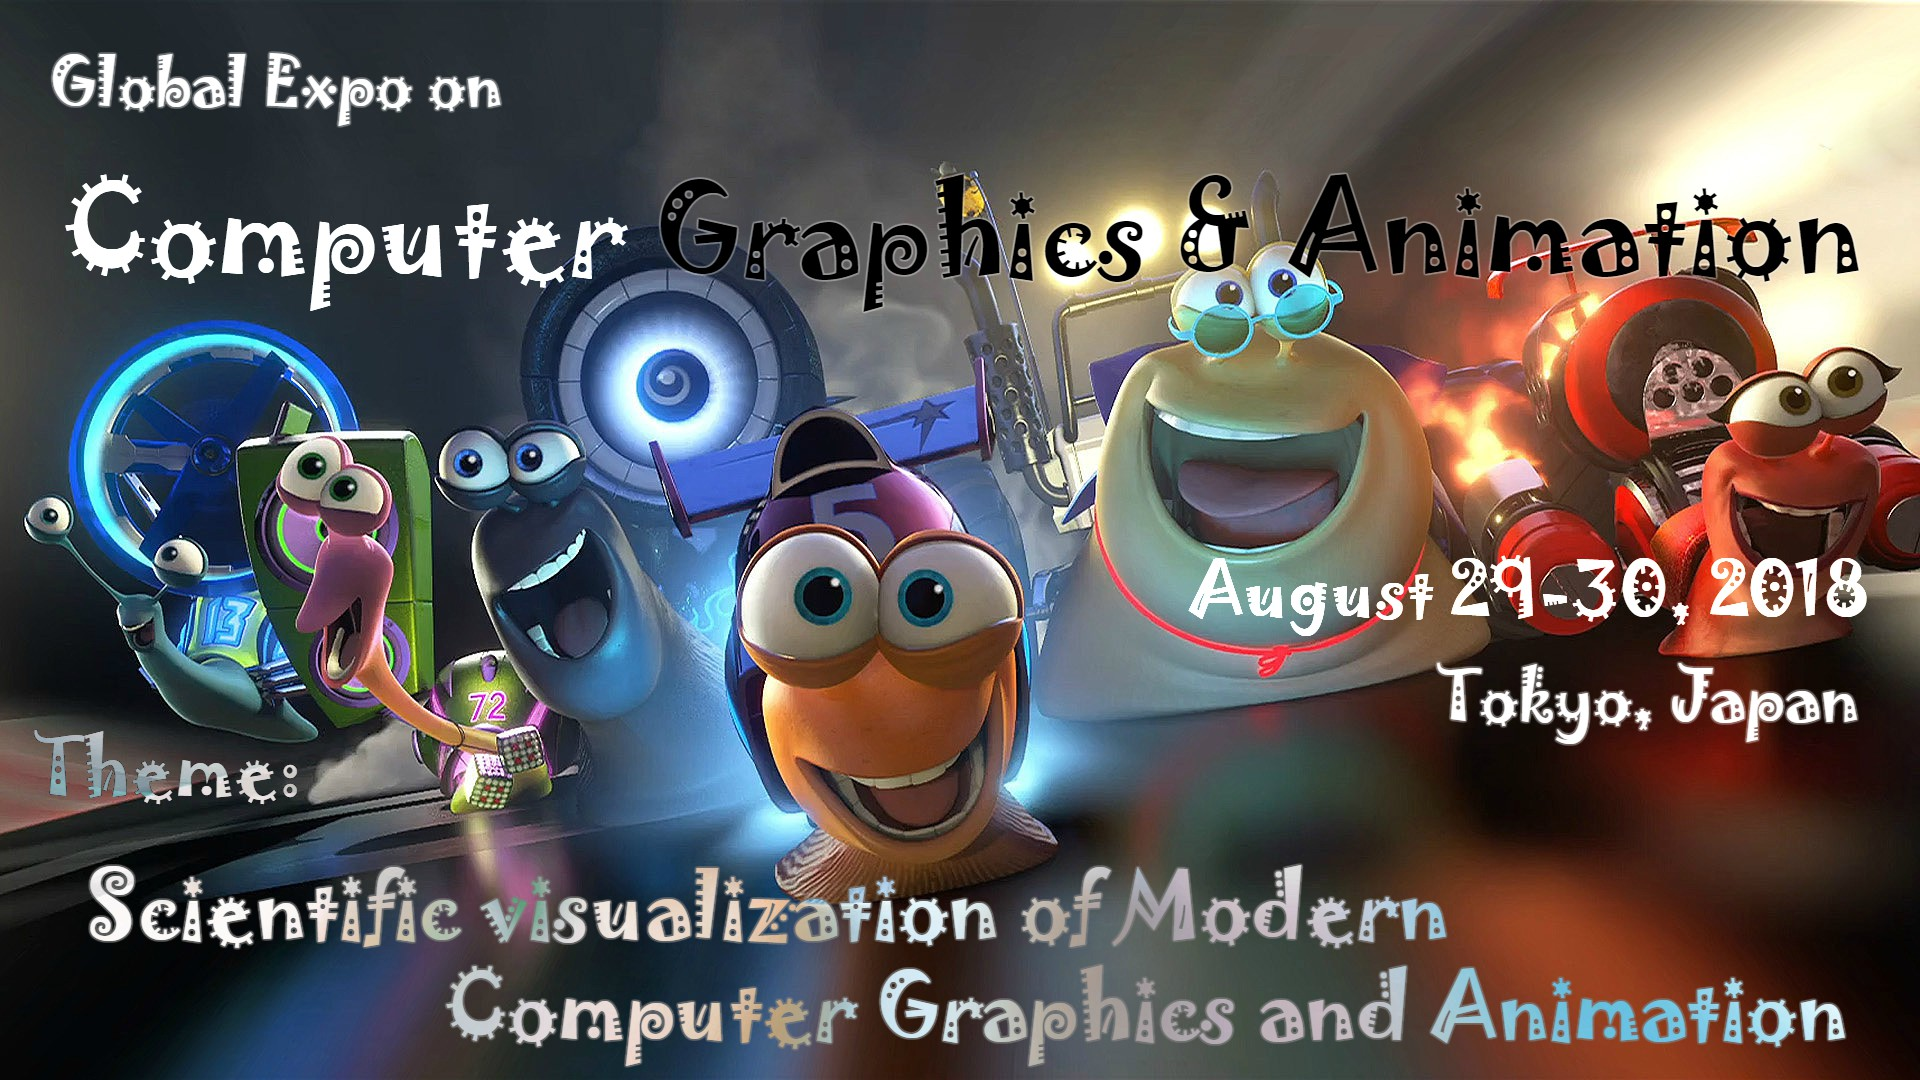 Global Expo on Computer Graphics & Animation